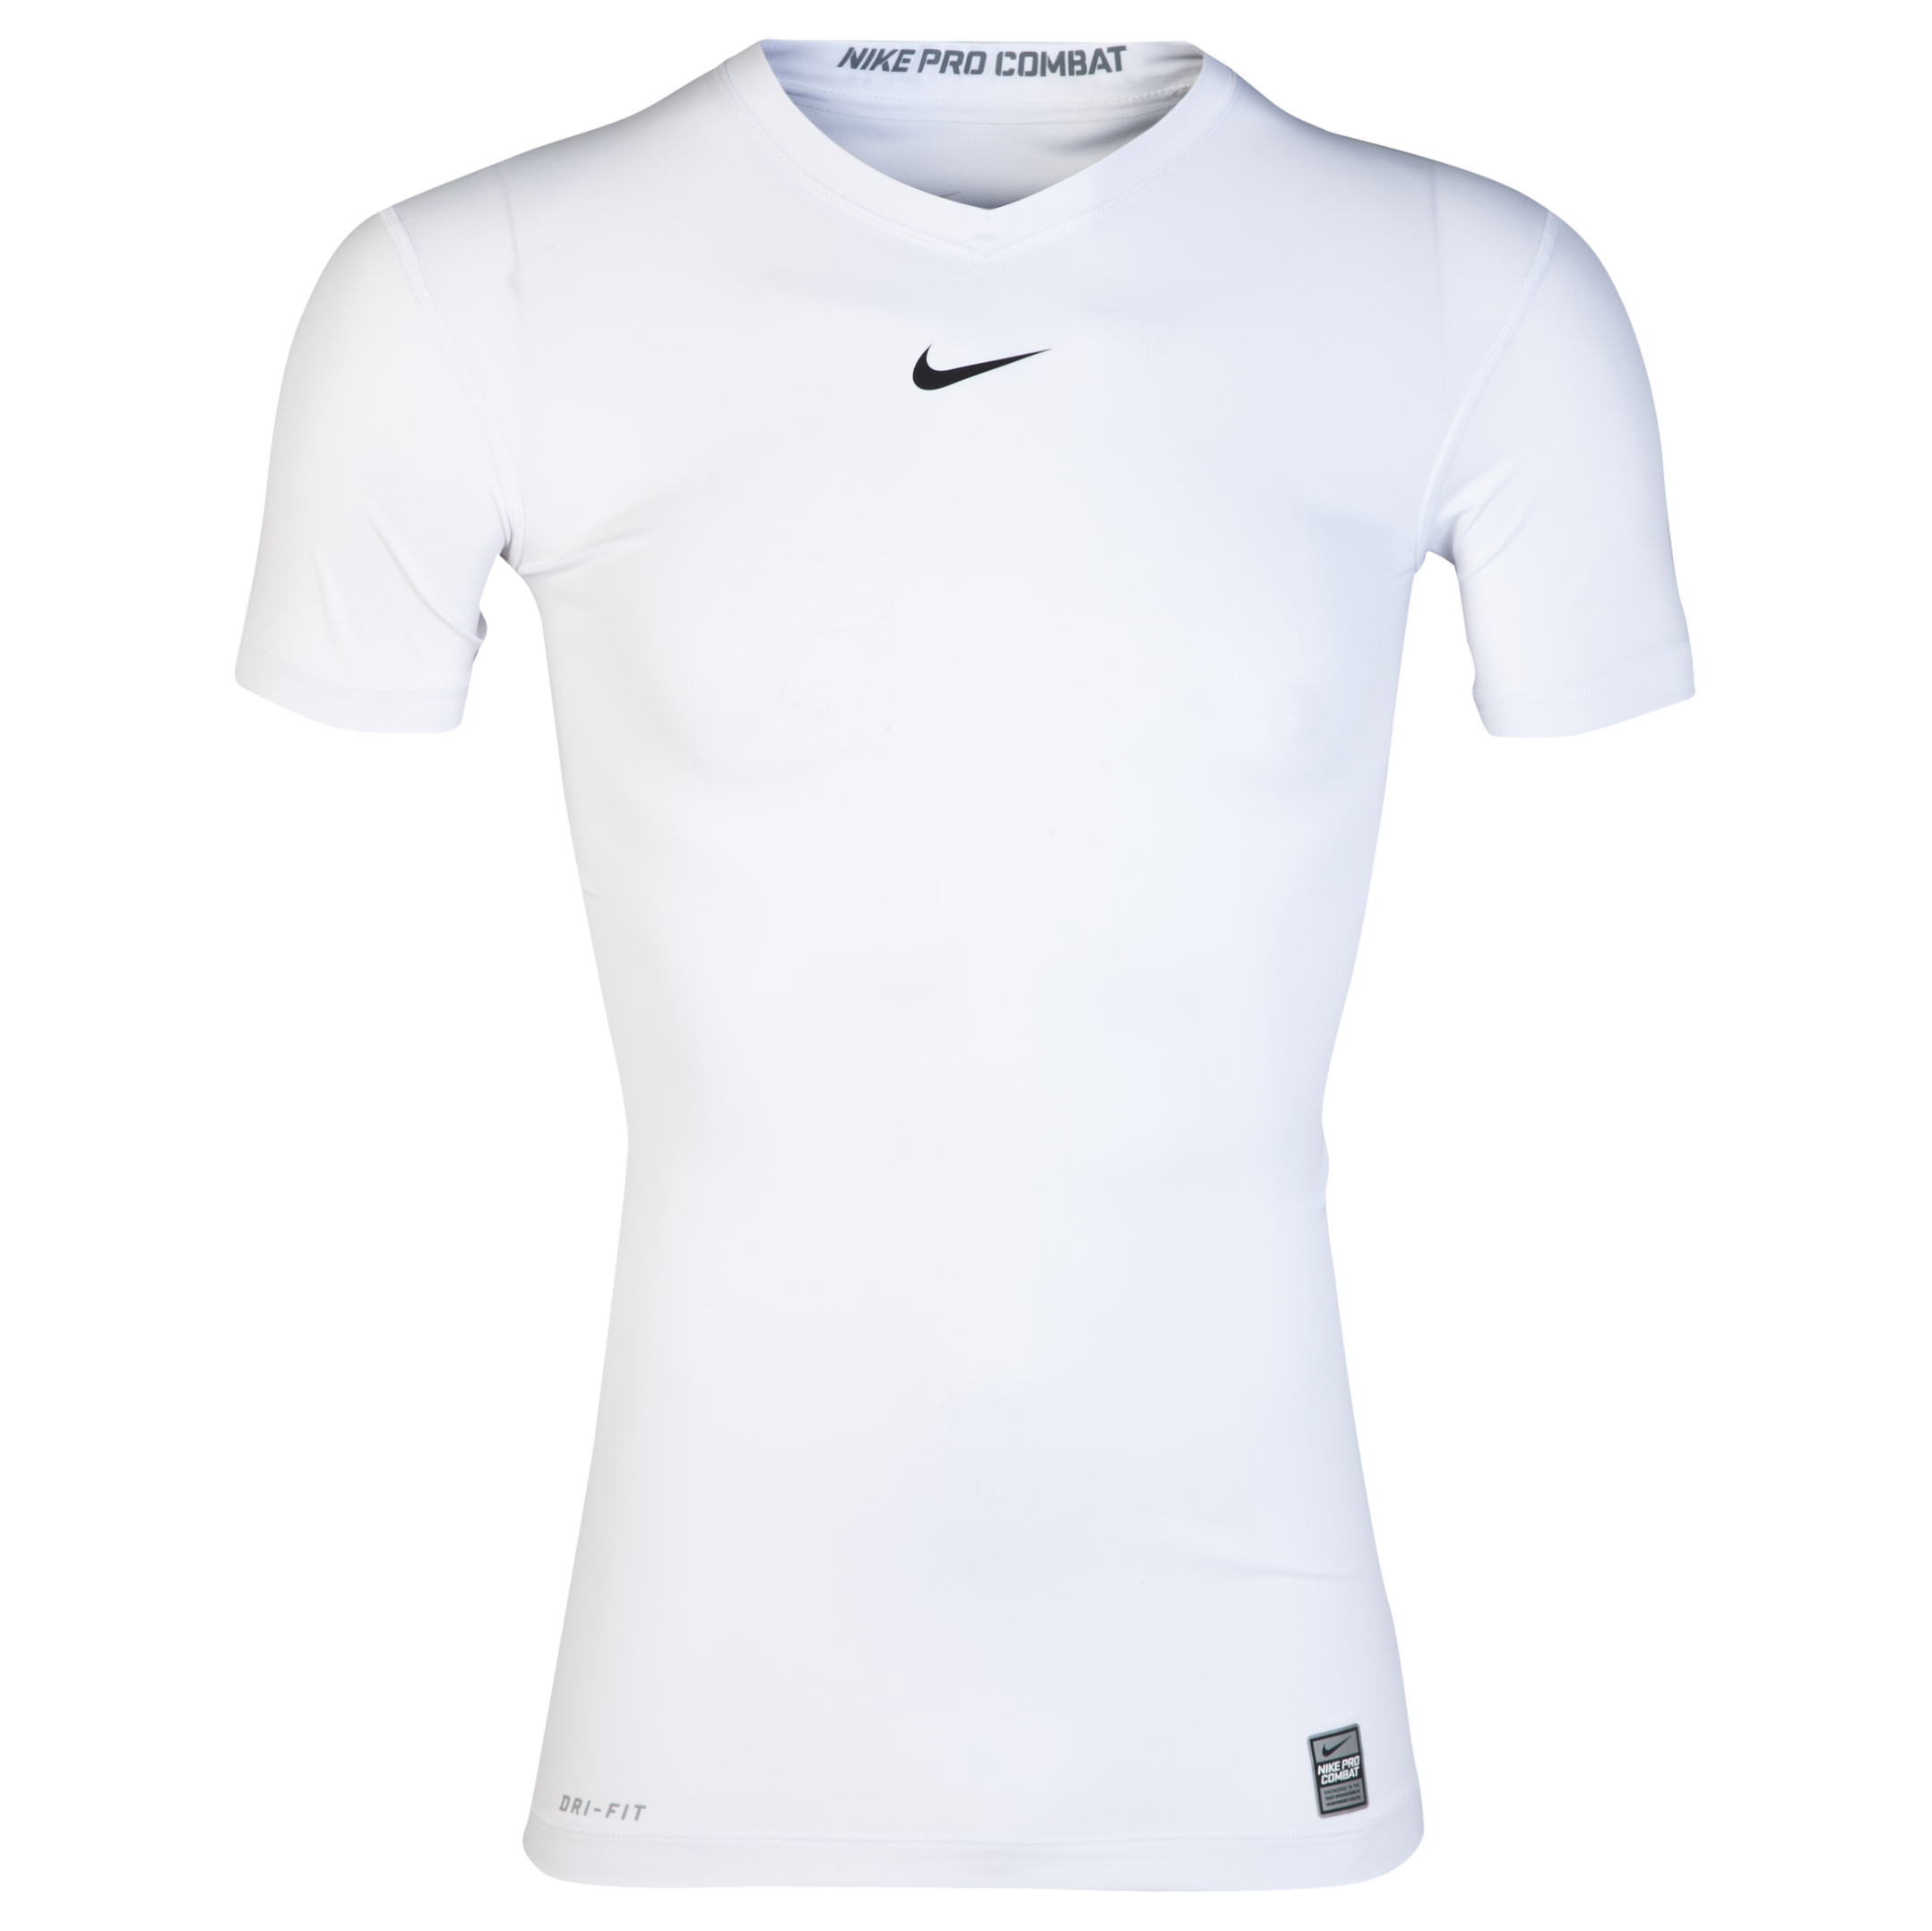 Nike Pro Combat Ultralight Base Layer Top White